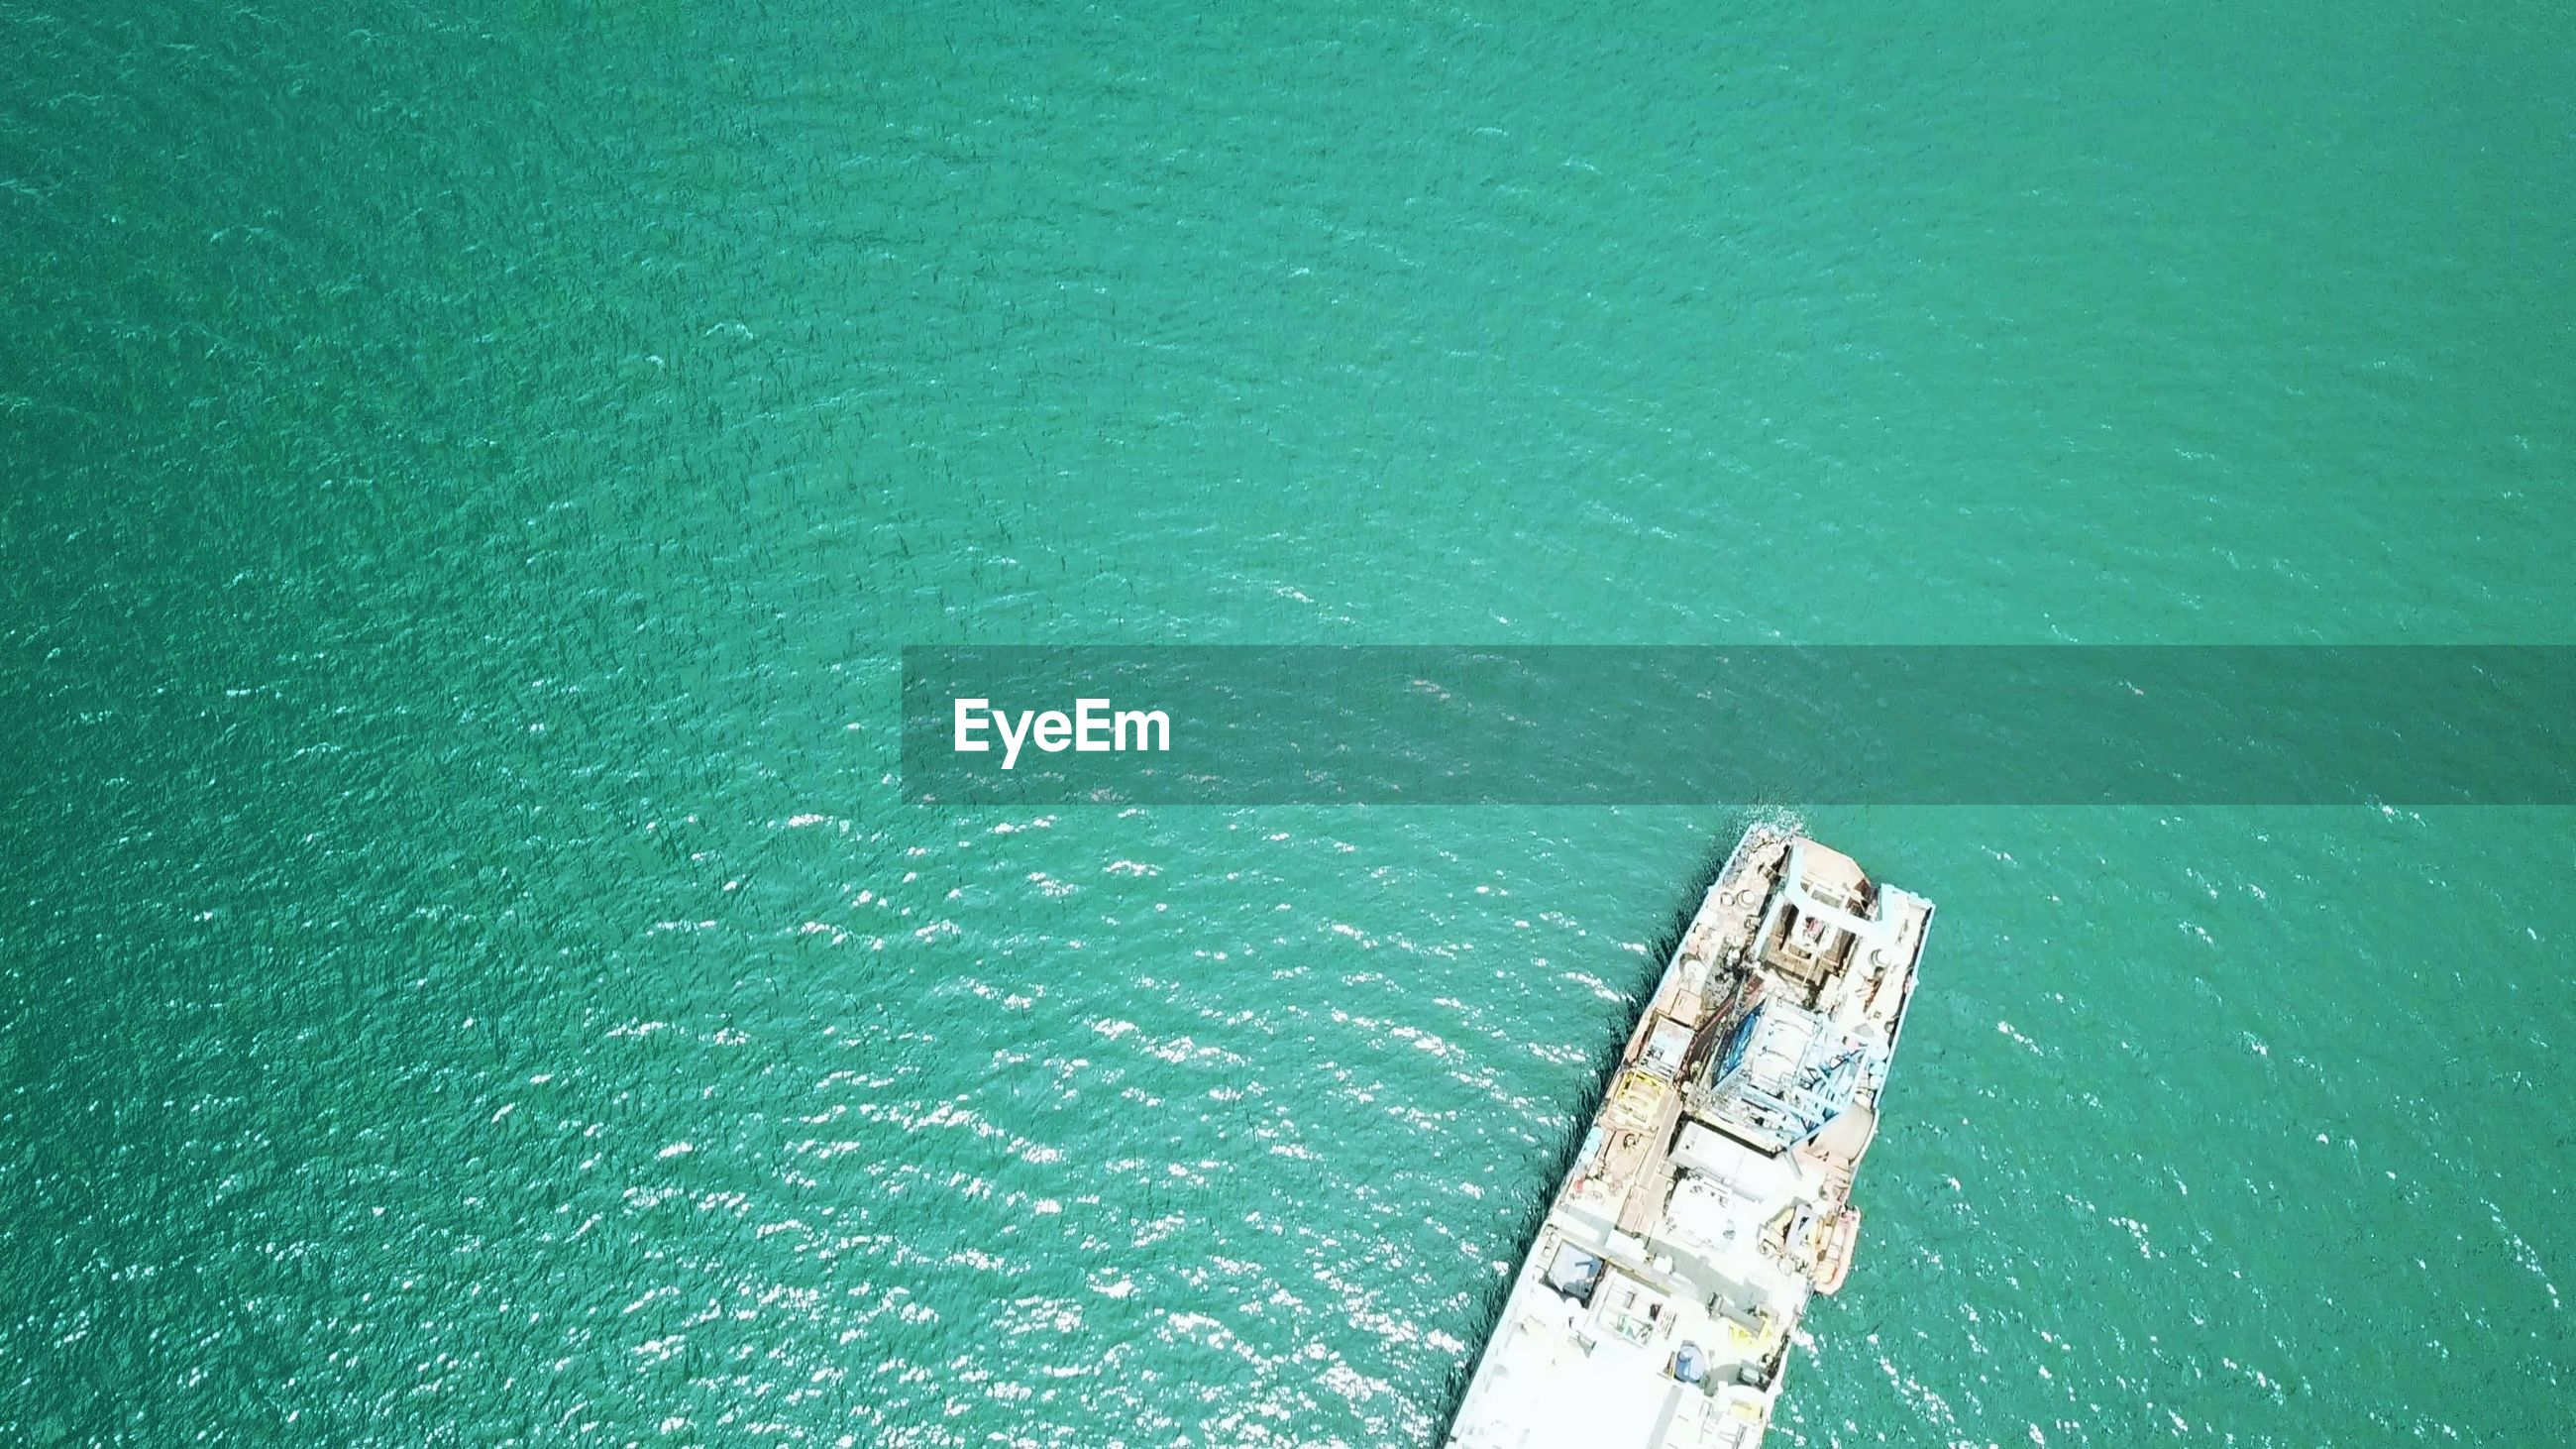 HIGH ANGLE VIEW OF SHIP IN SEA AGAINST GREEN BLUE SKY